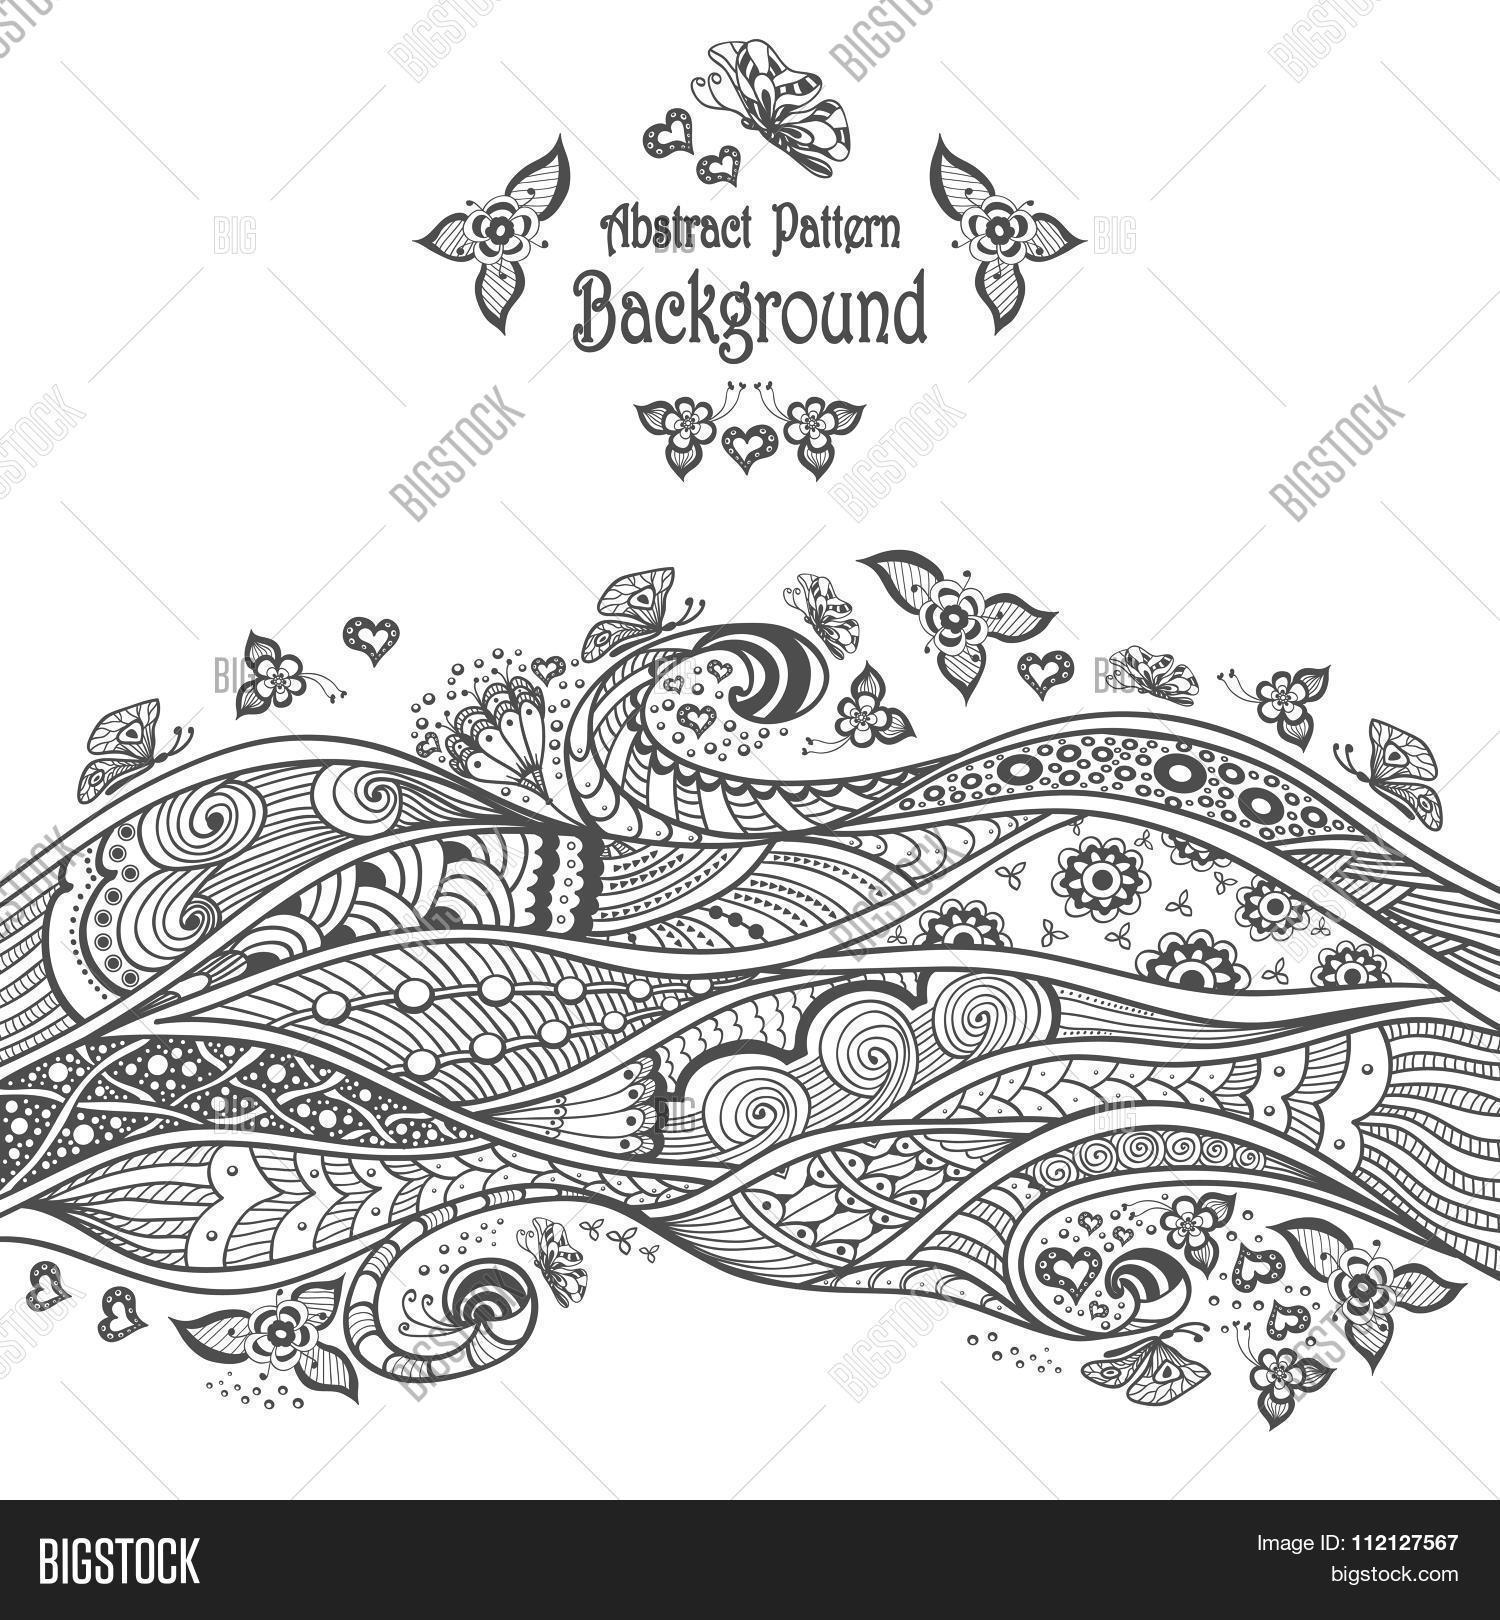 Abstract Pattern Vector & Photo (Free Trial) | Bigstock